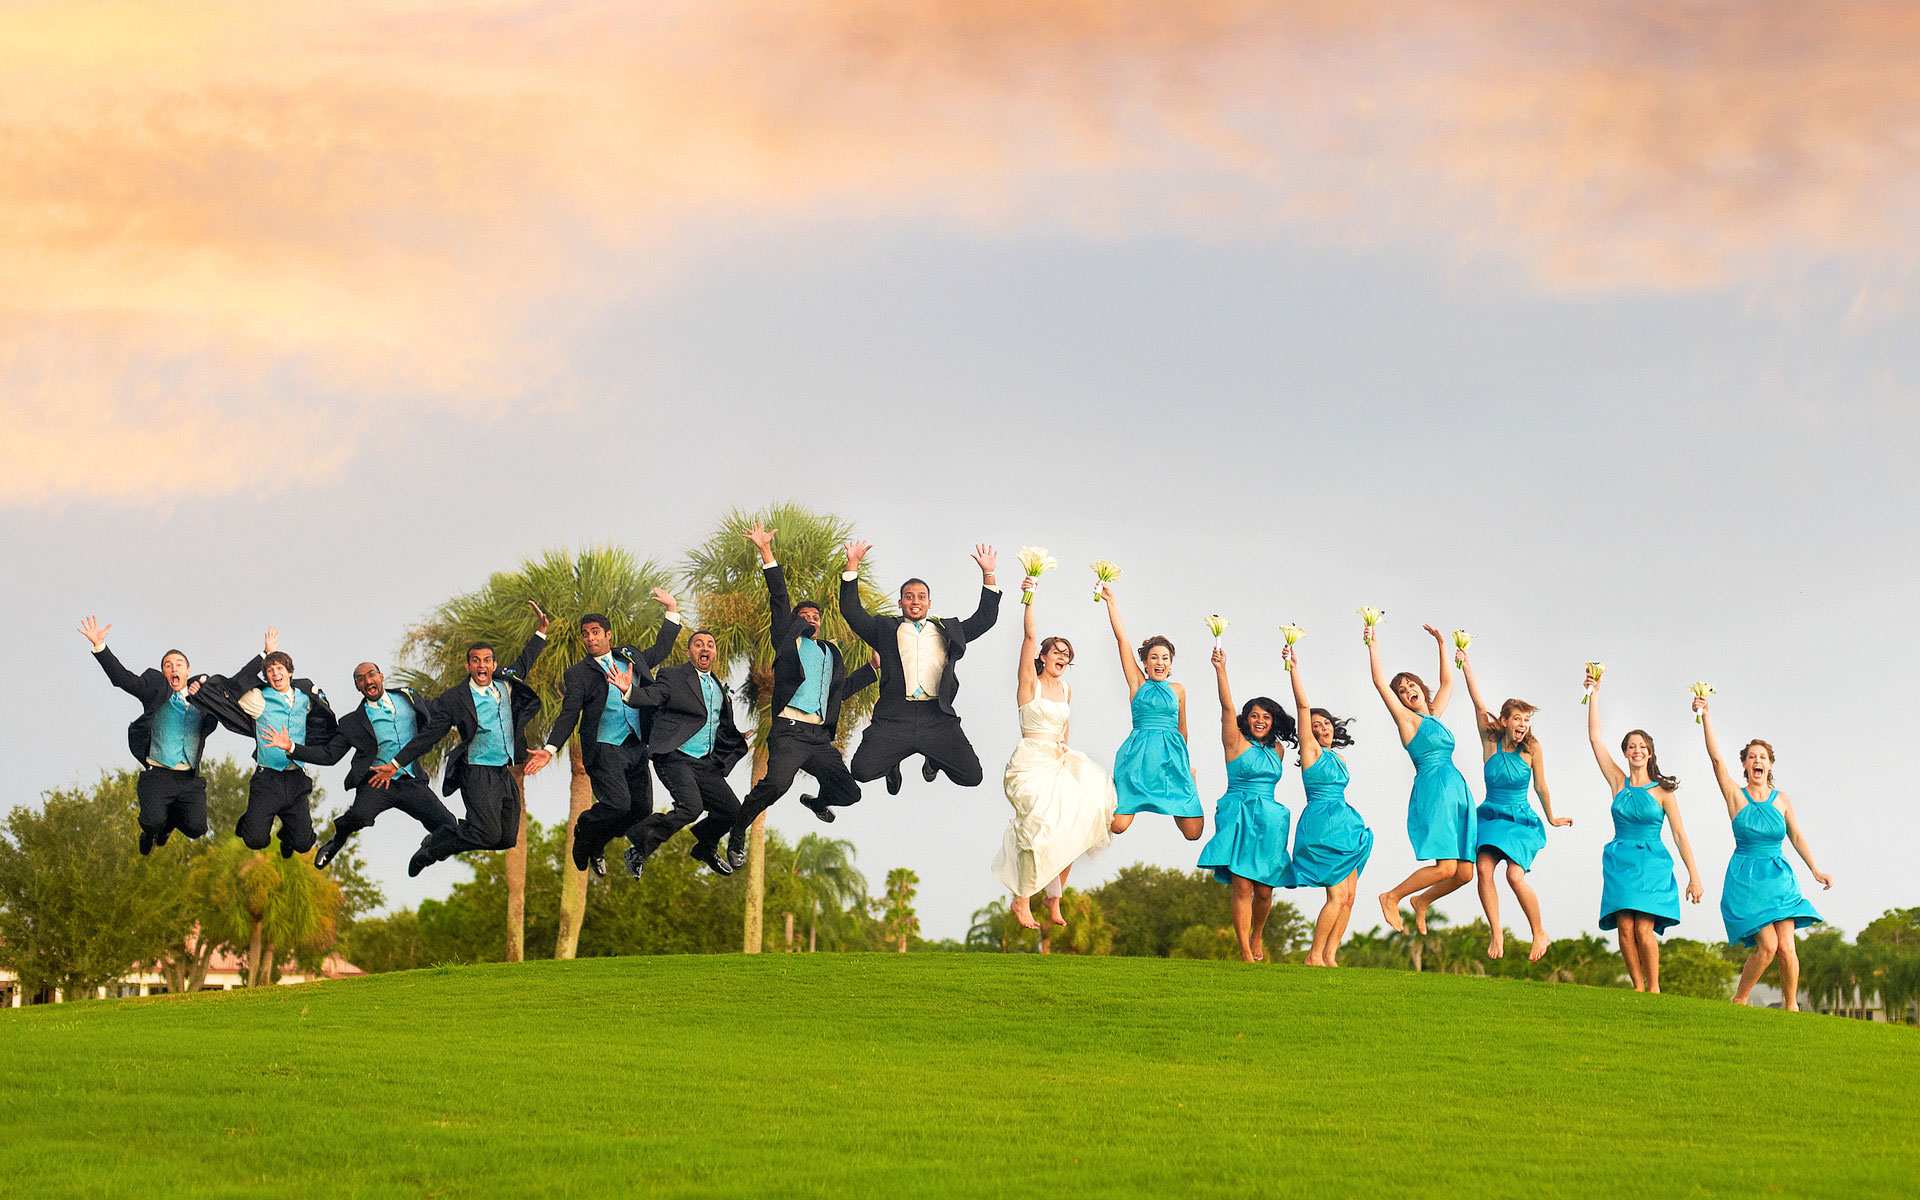 Large Bridal Party Jumping High in the Air Together